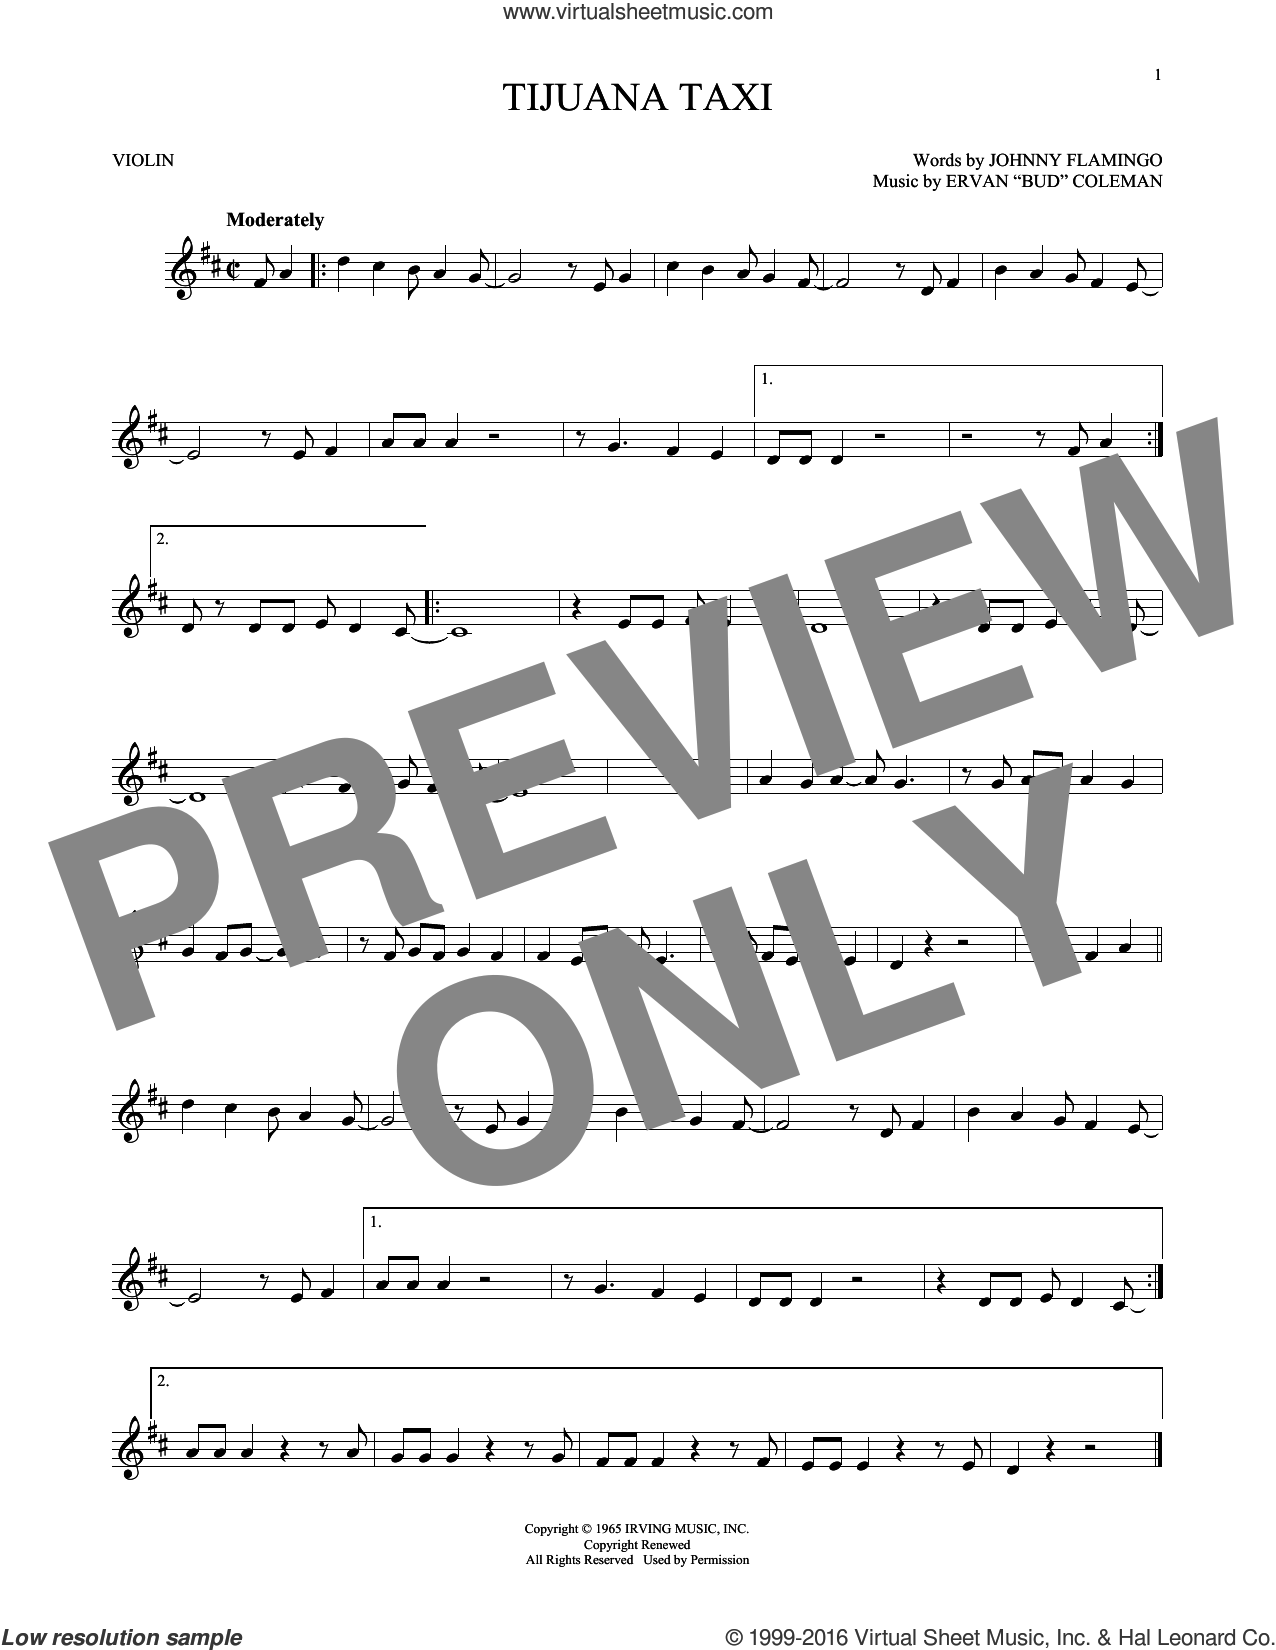 Tijuana Taxi sheet music for violin solo by Herb Alpert & The Tijuana Brass Band, intermediate. Score Image Preview.